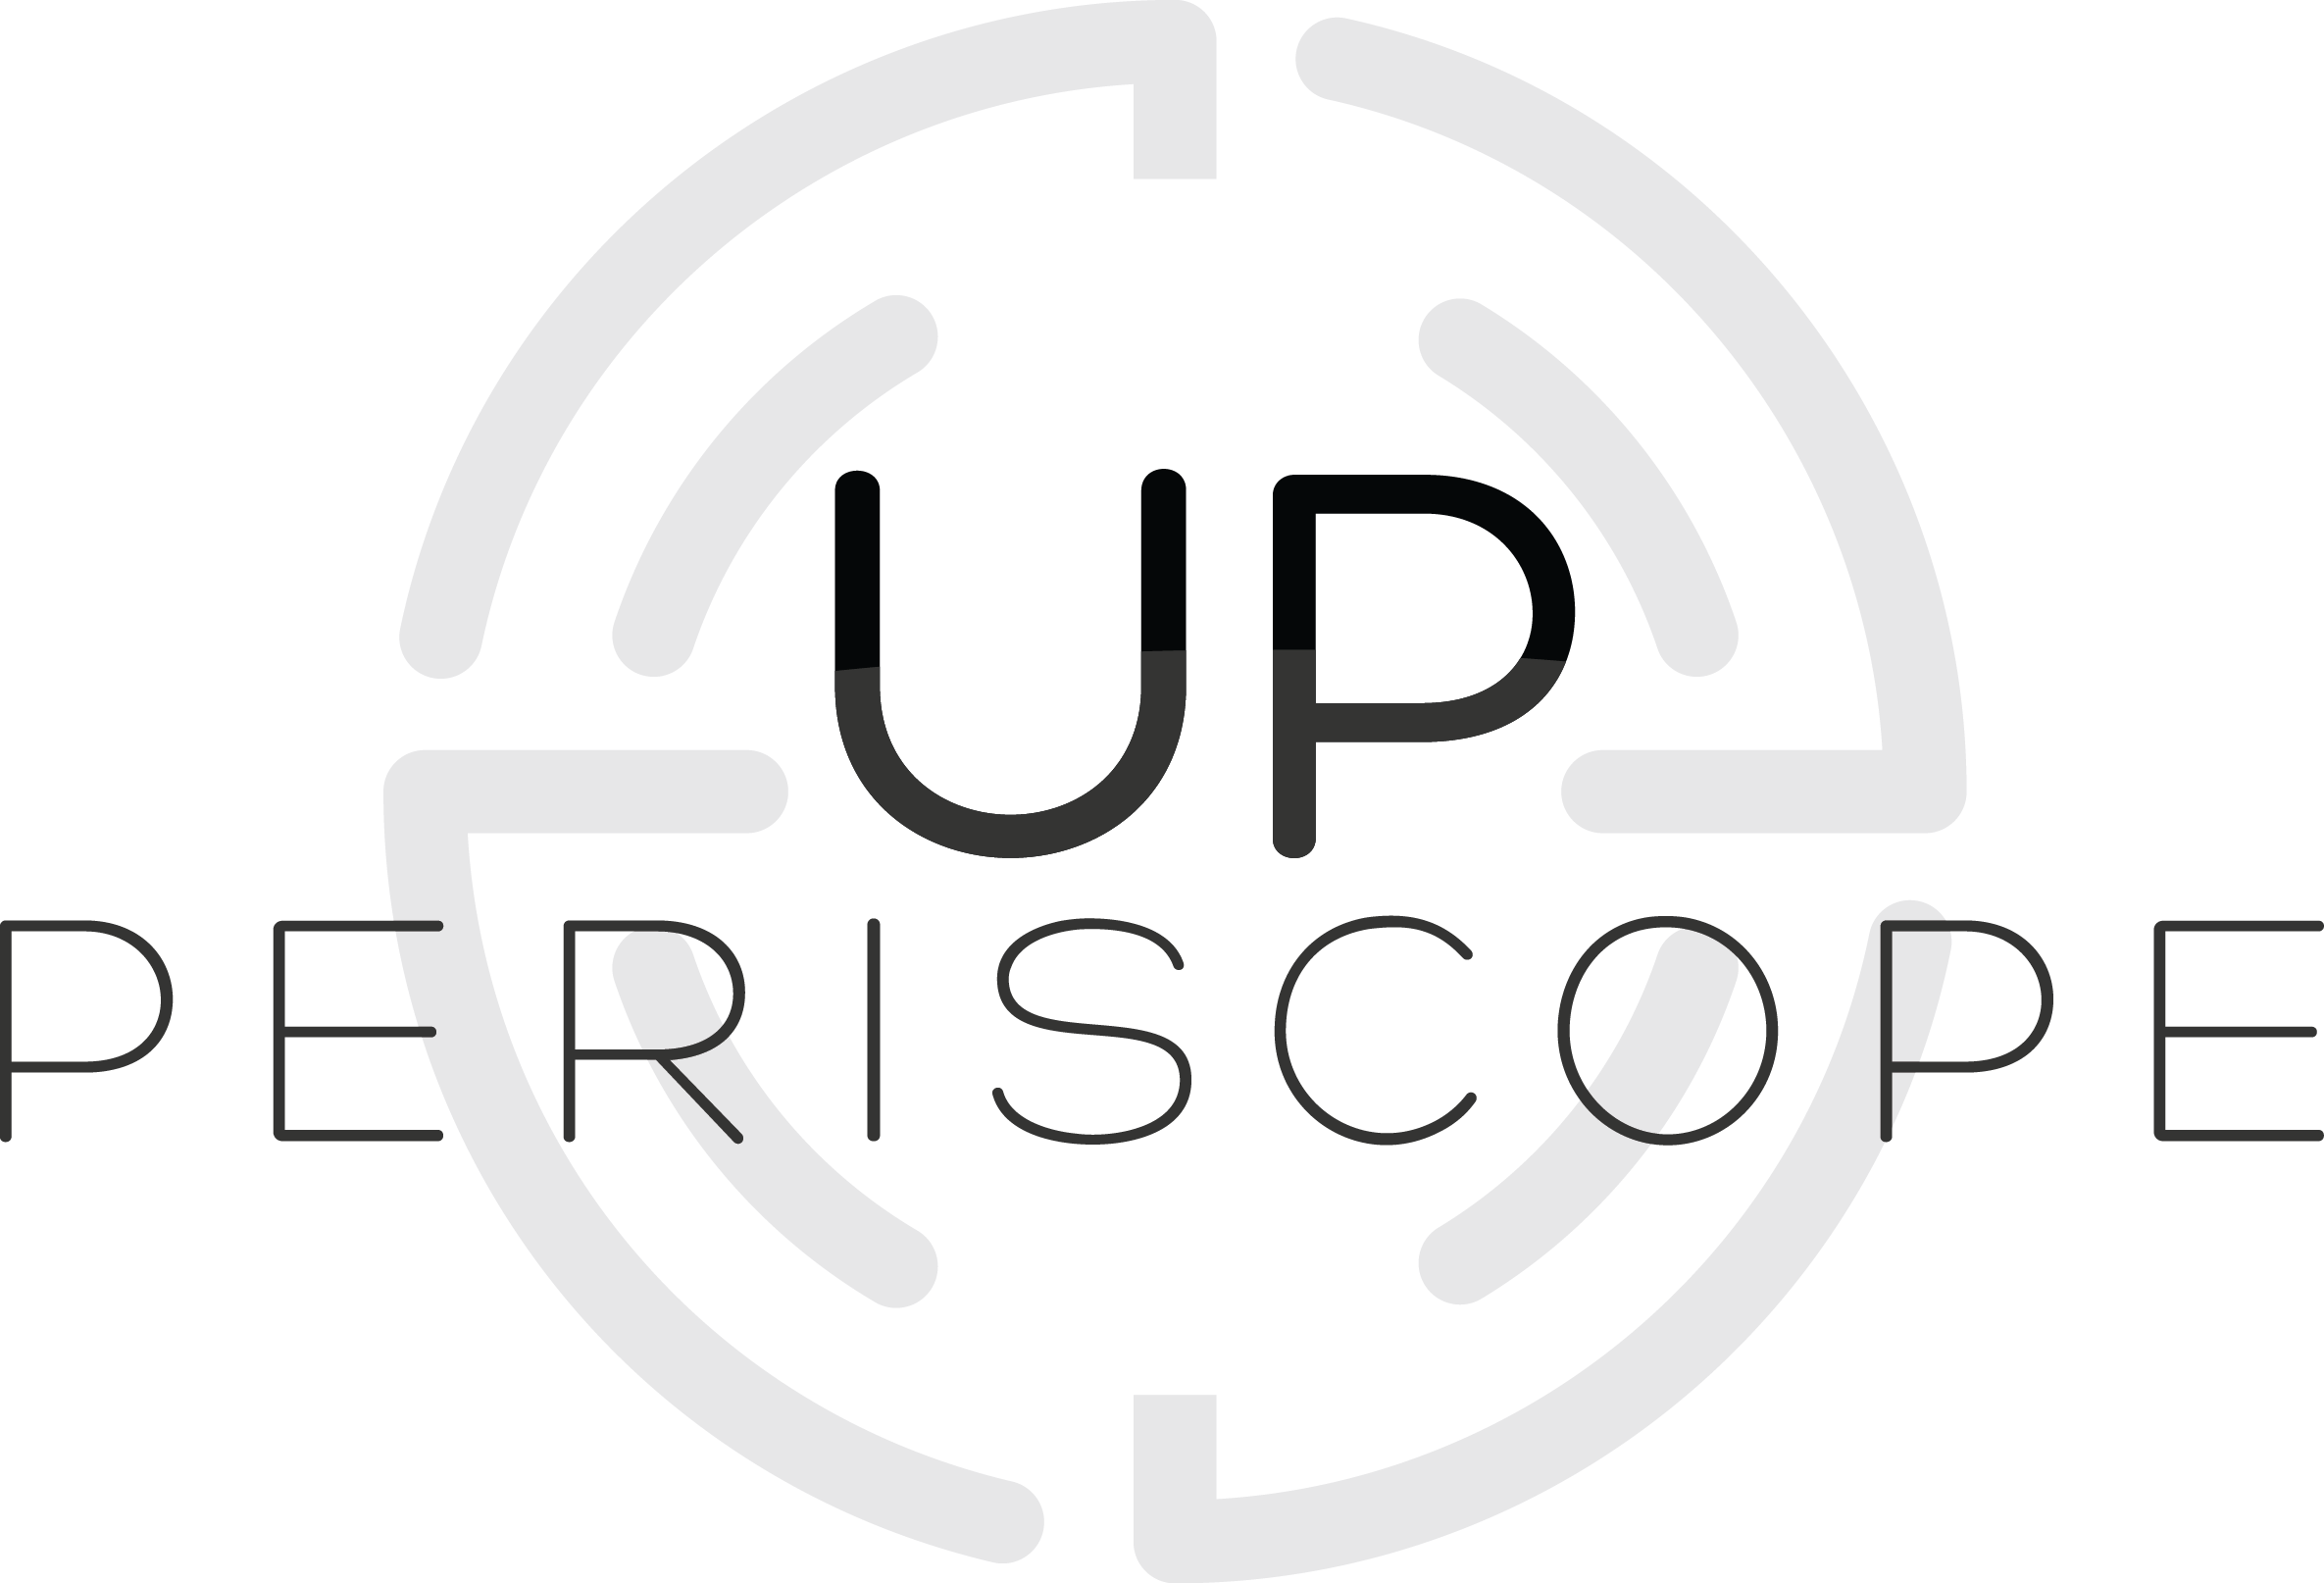 up periscope logo png #1969